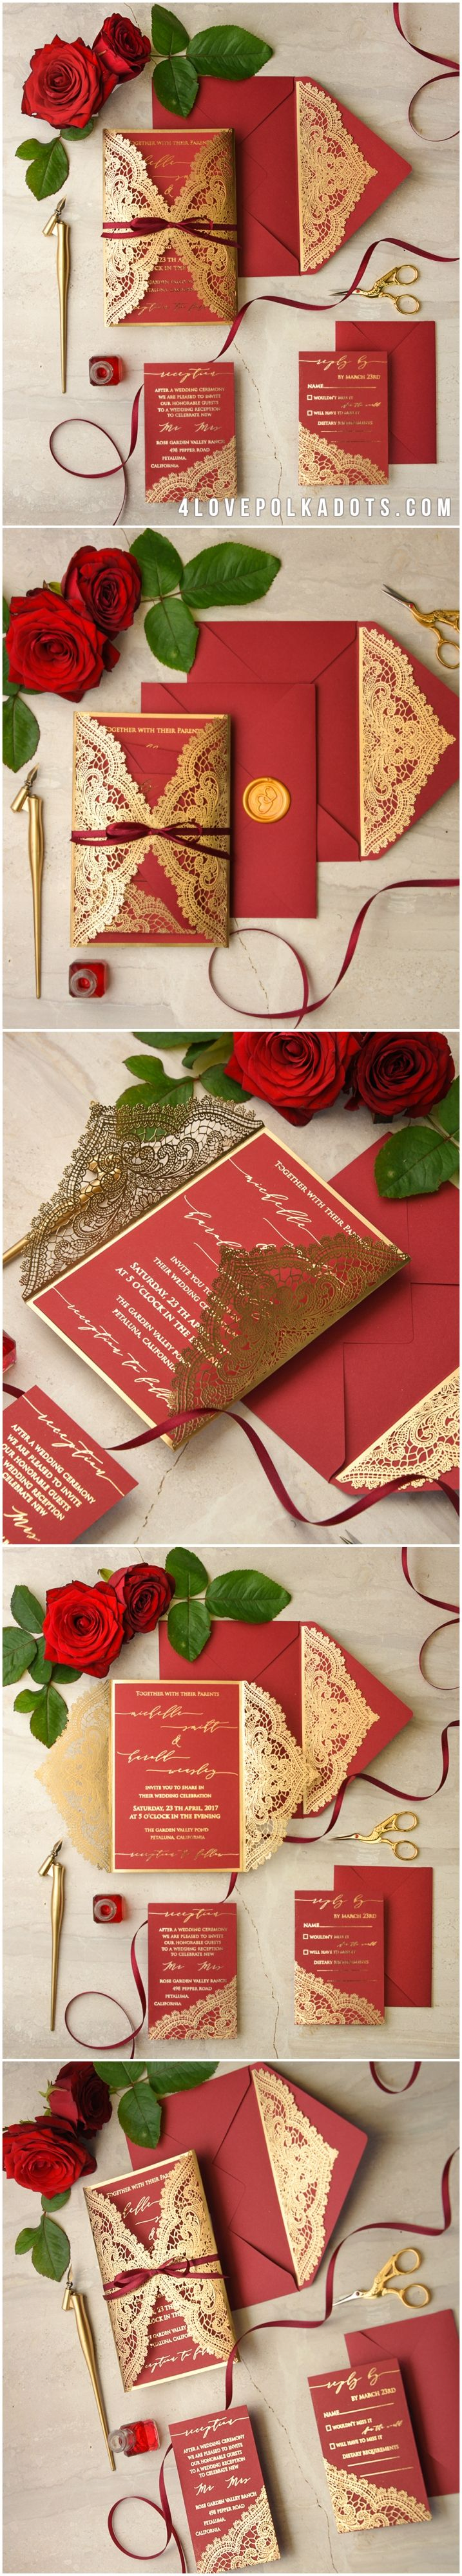 WEDDING INVITATIONS glitter | Red gold weddings, Weddingideas and ...